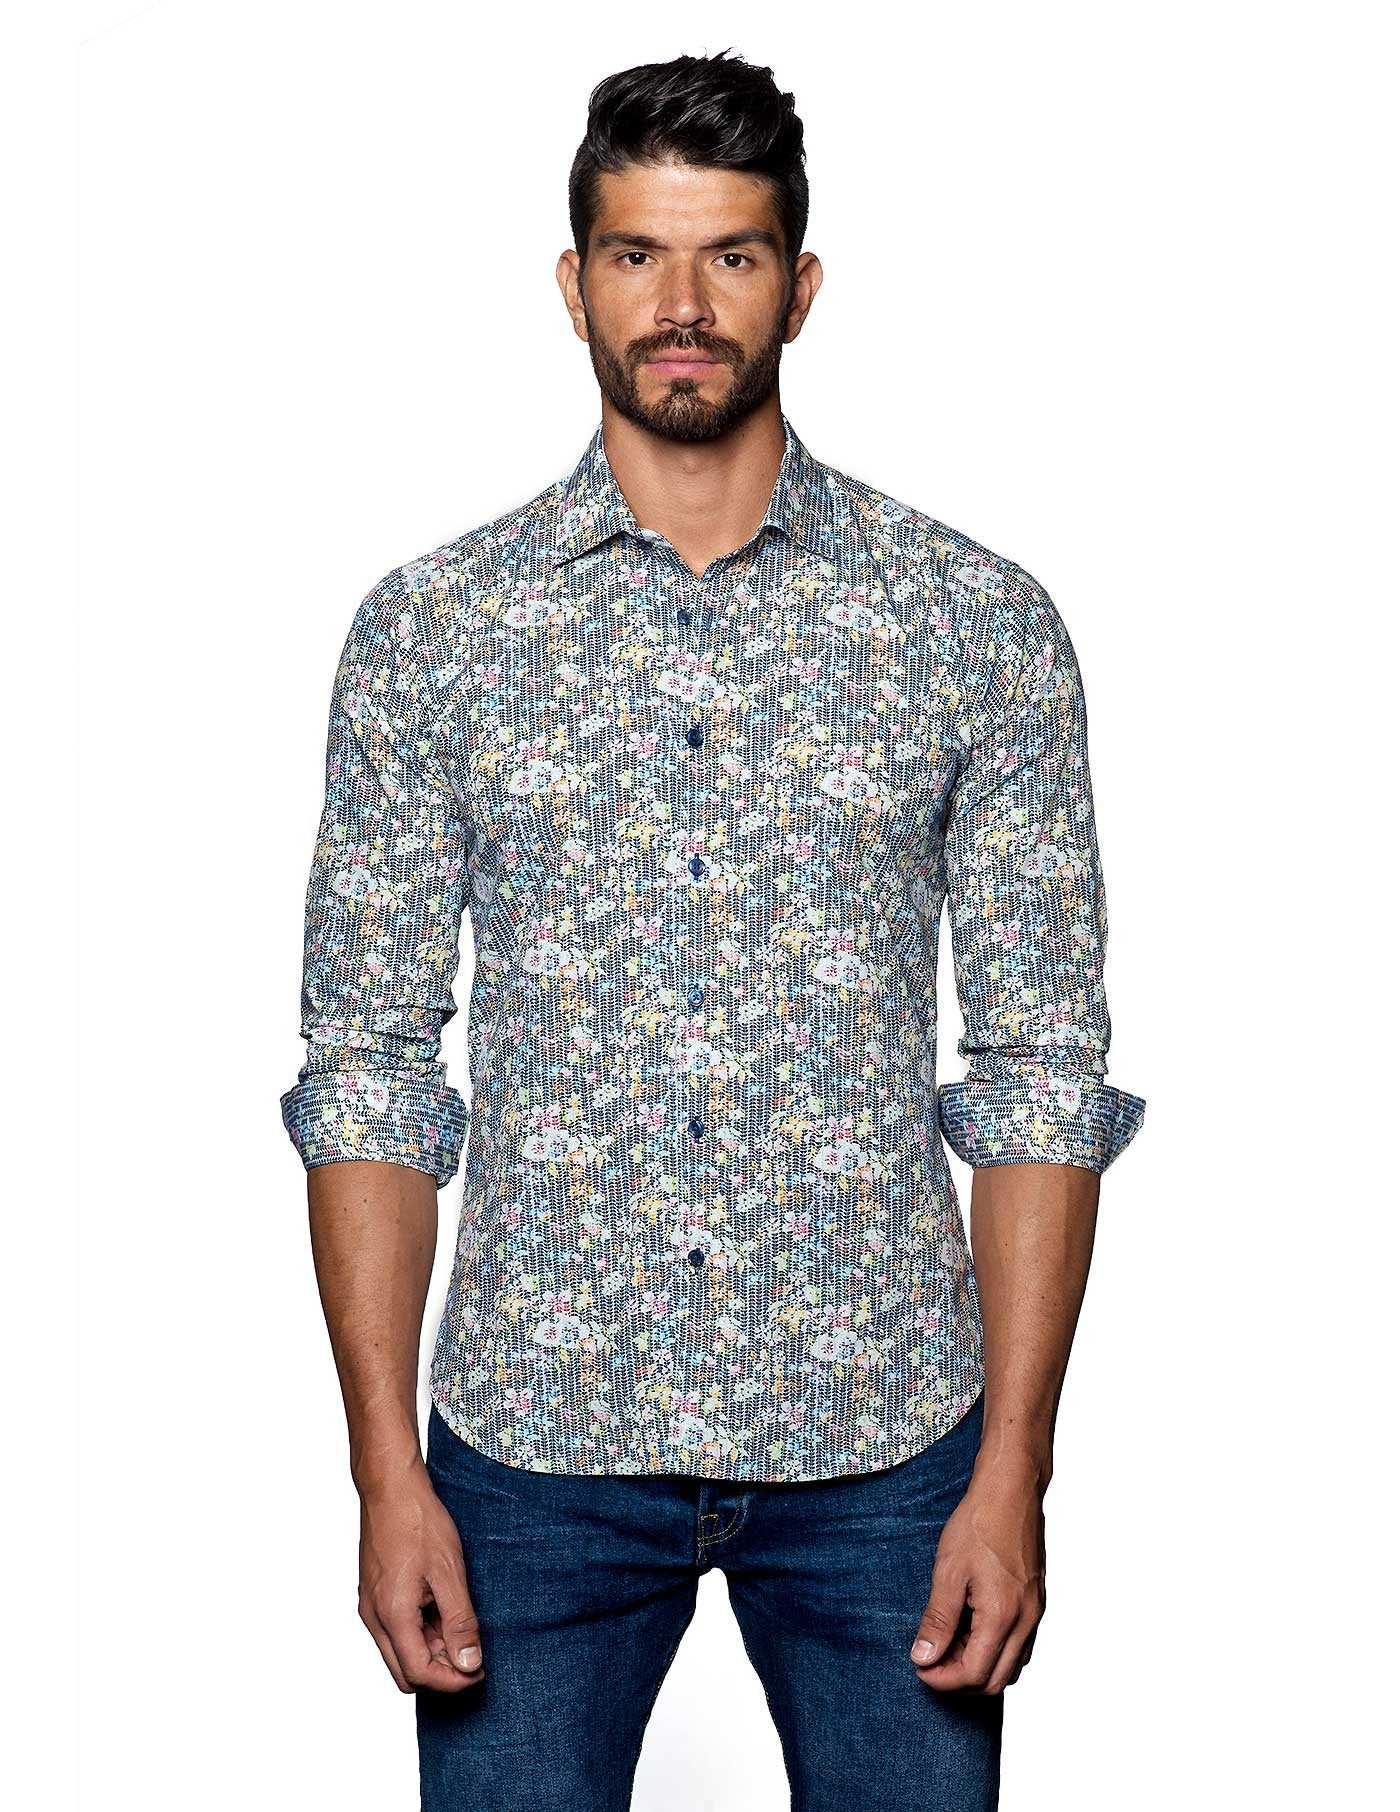 Multicolor Floral Print Shirt for Men - front T-2078 - Jared Lang